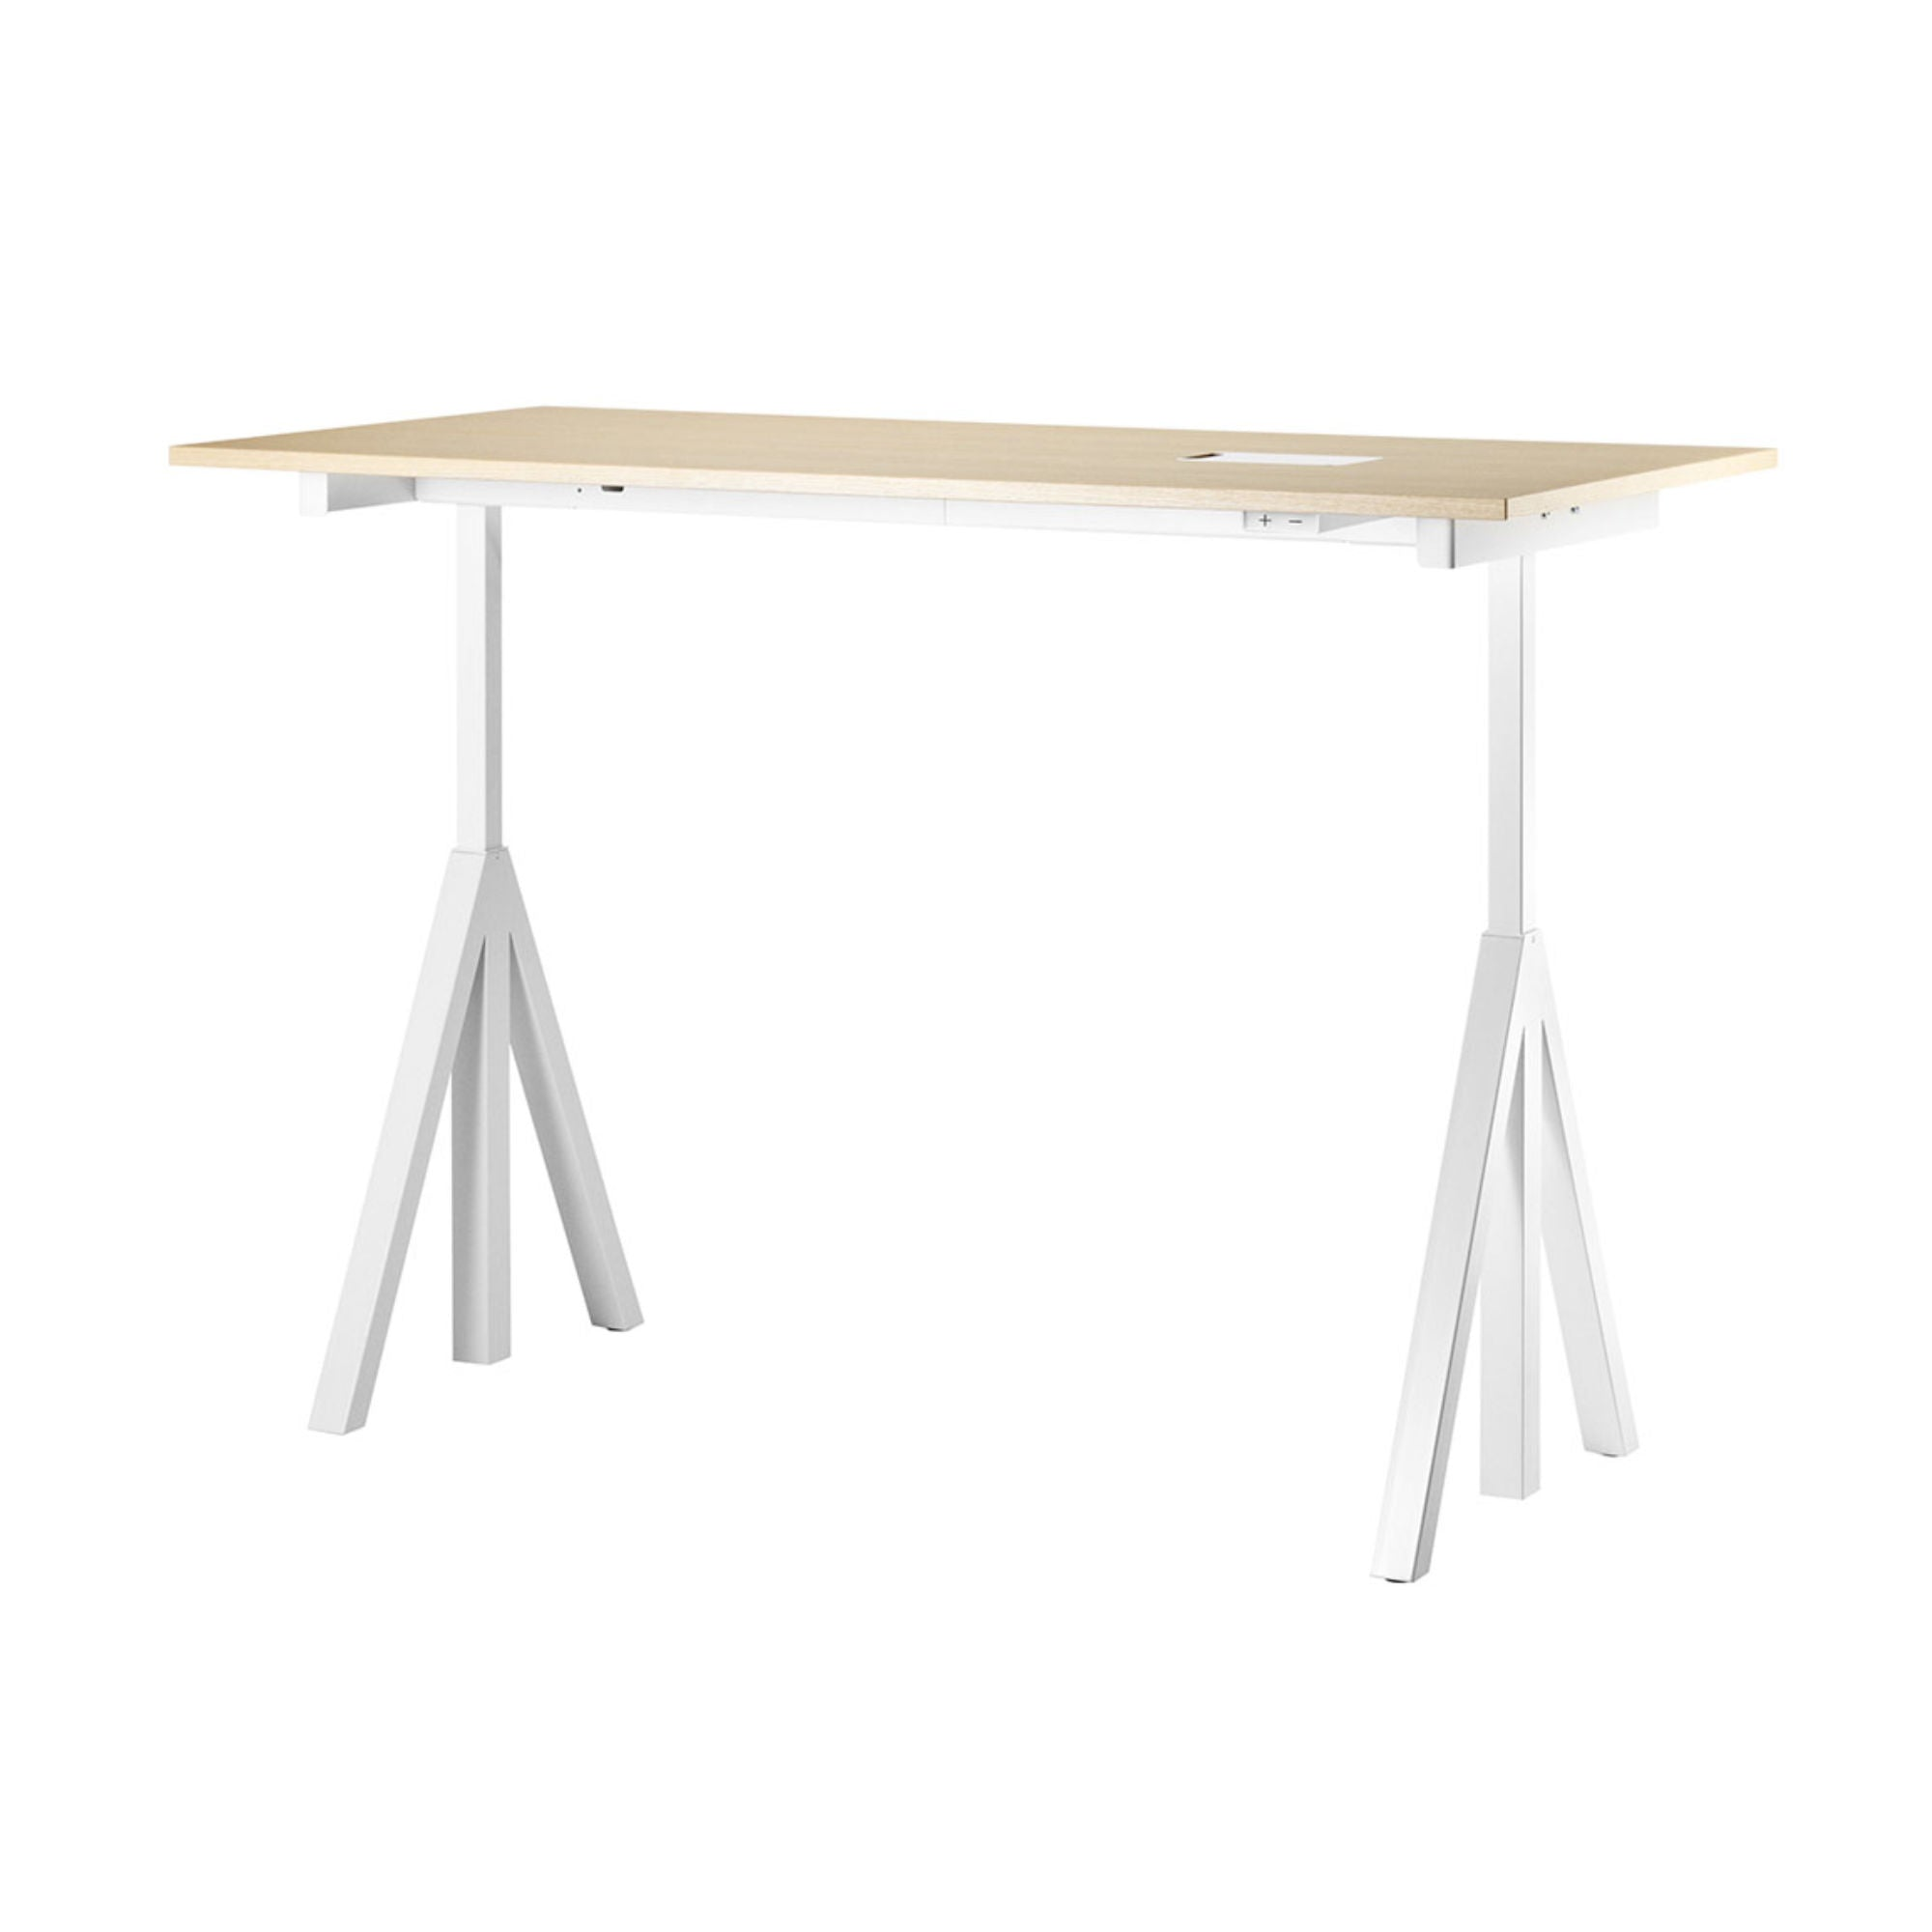 String Works™ Heigh-Adjustable Desk 120X78 , Ash